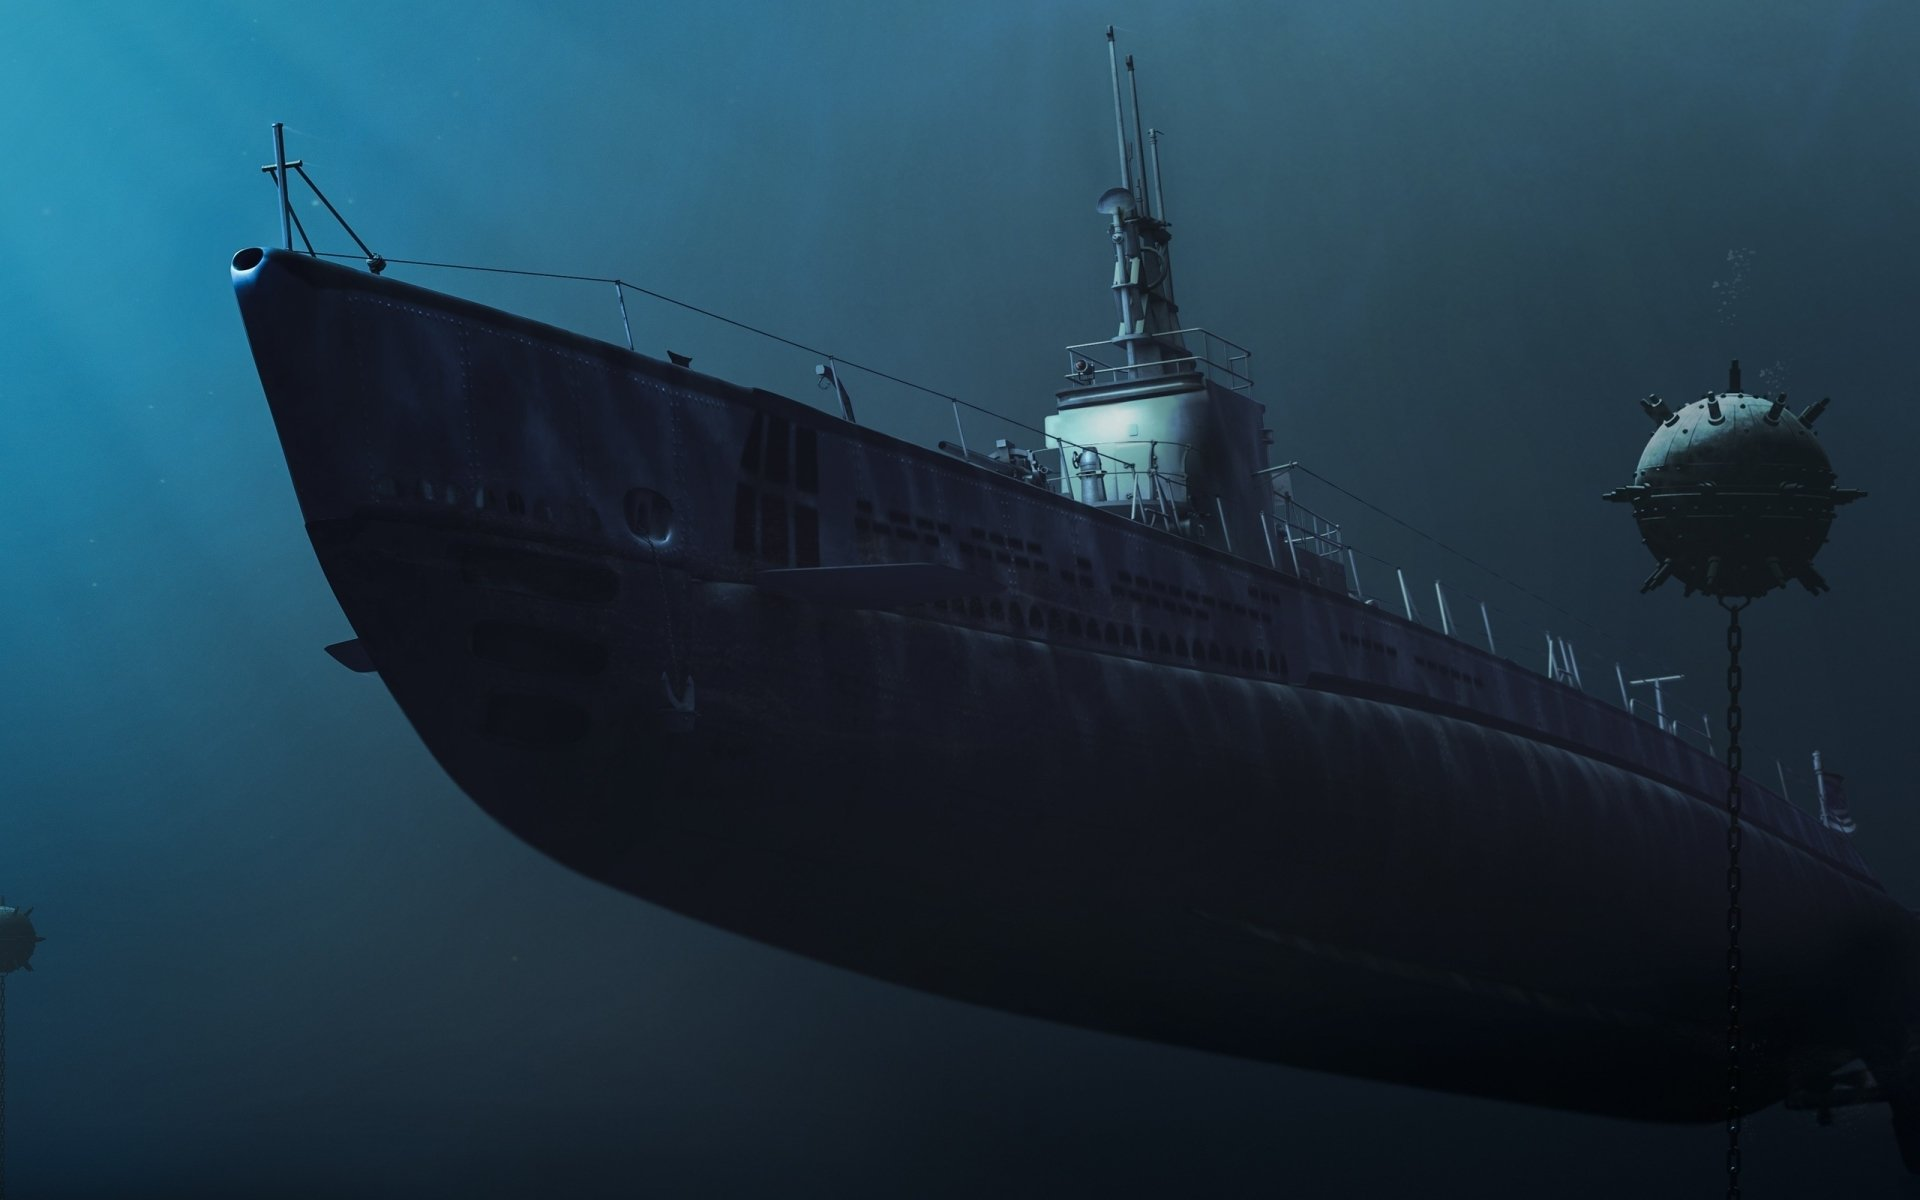 Military - Submarine  Wallpaper